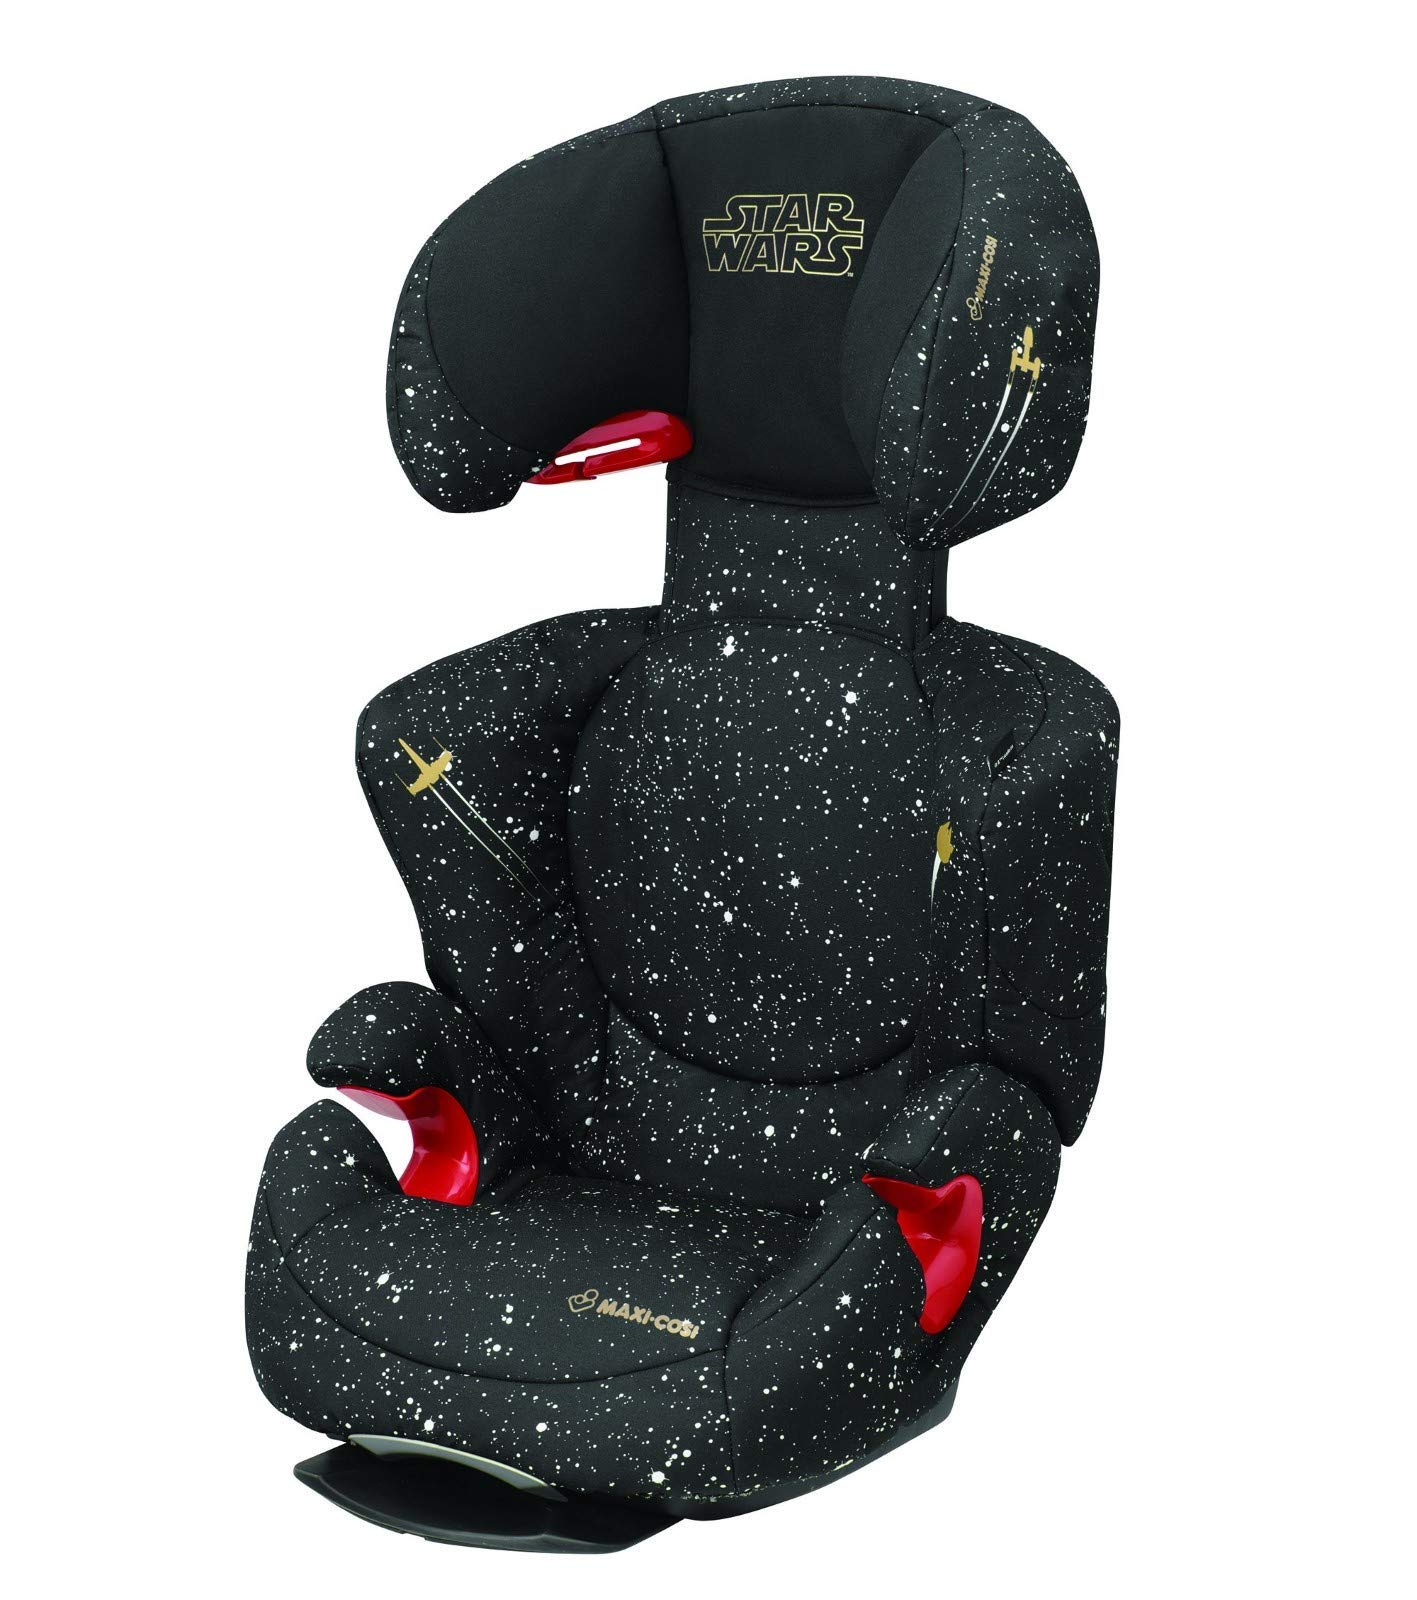 Maxi-Cosi Rodi AirProtect Child Car Seat, Lightweight Highback Booster, 3.5-12 Years, 15-36 kg, Star Wars Maxi-Cosi Child car seat, suitable from 3.5 to 12 years (15-36 kg) Easily install this safe car seat with a three point seat belt and attach the anchorage point in the head rest through your cars head rest Patented AirProtect technology in headrest reduces the risk of head and neck injuries up to 20 percent 2